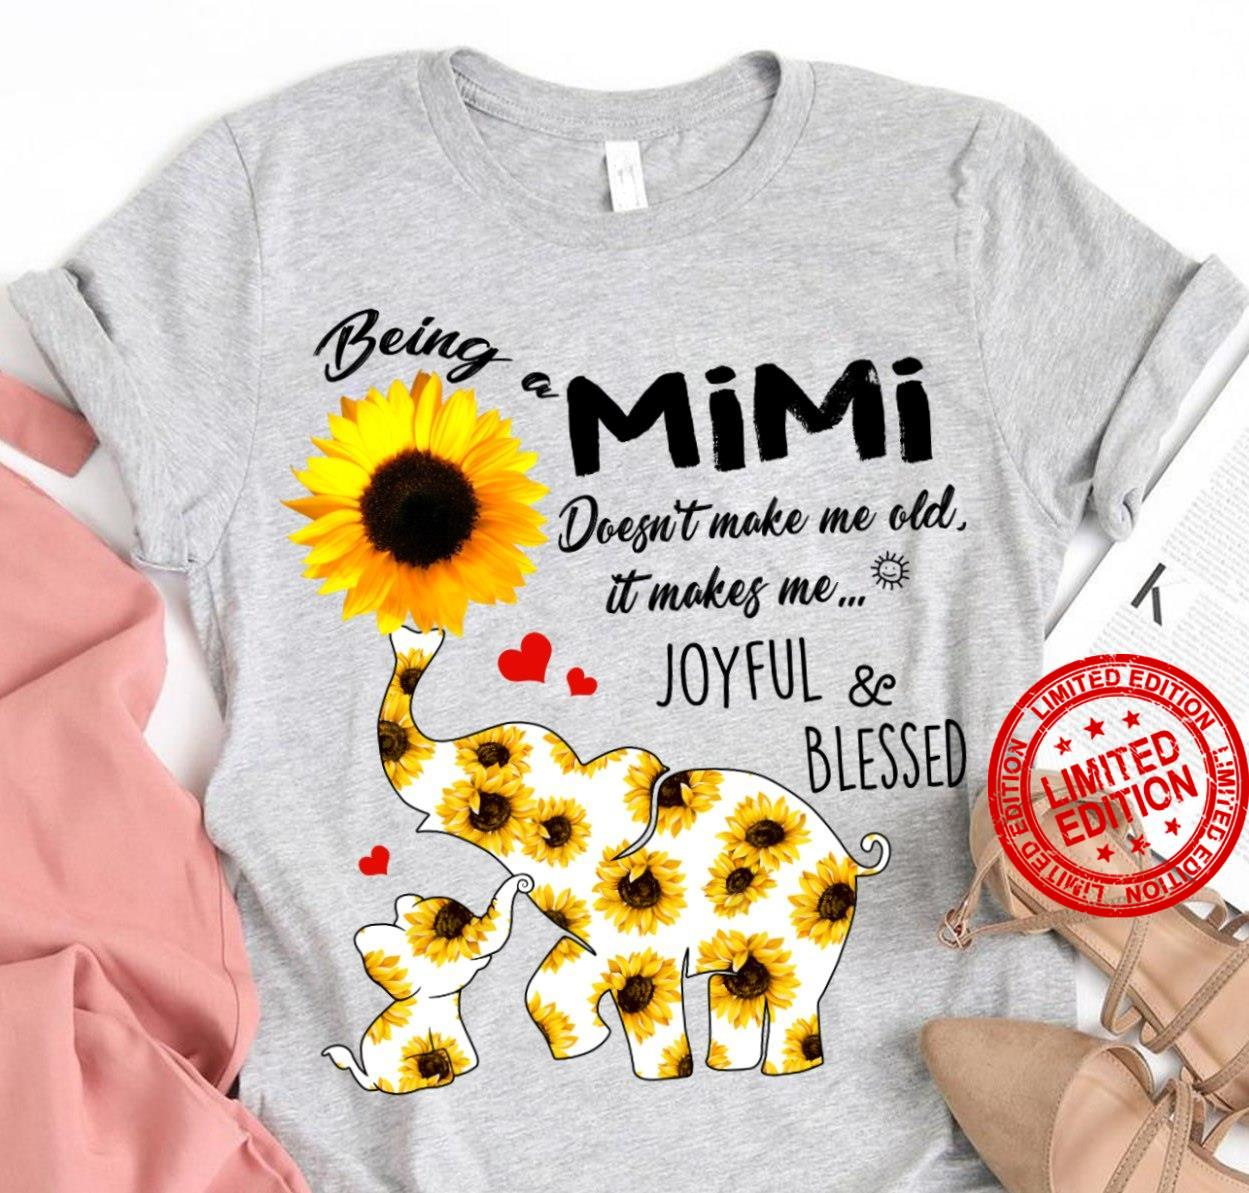 Being Mimi Doesn't Make Me Old Joyful & Blessed Shirt